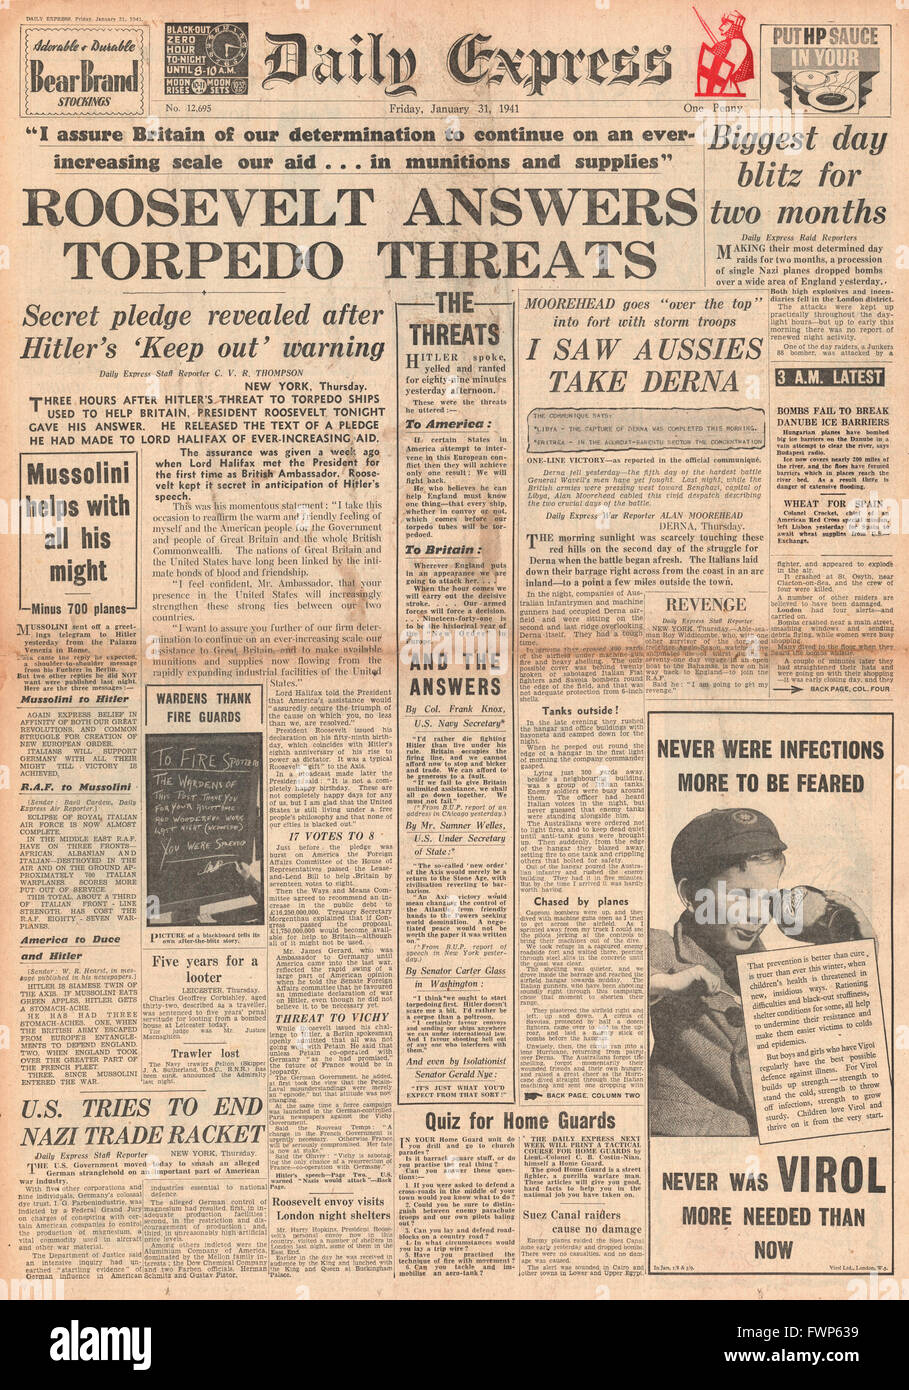 1941 front page Daily Express Roosevelt replies to threat on U.S. Shipping - Stock Image